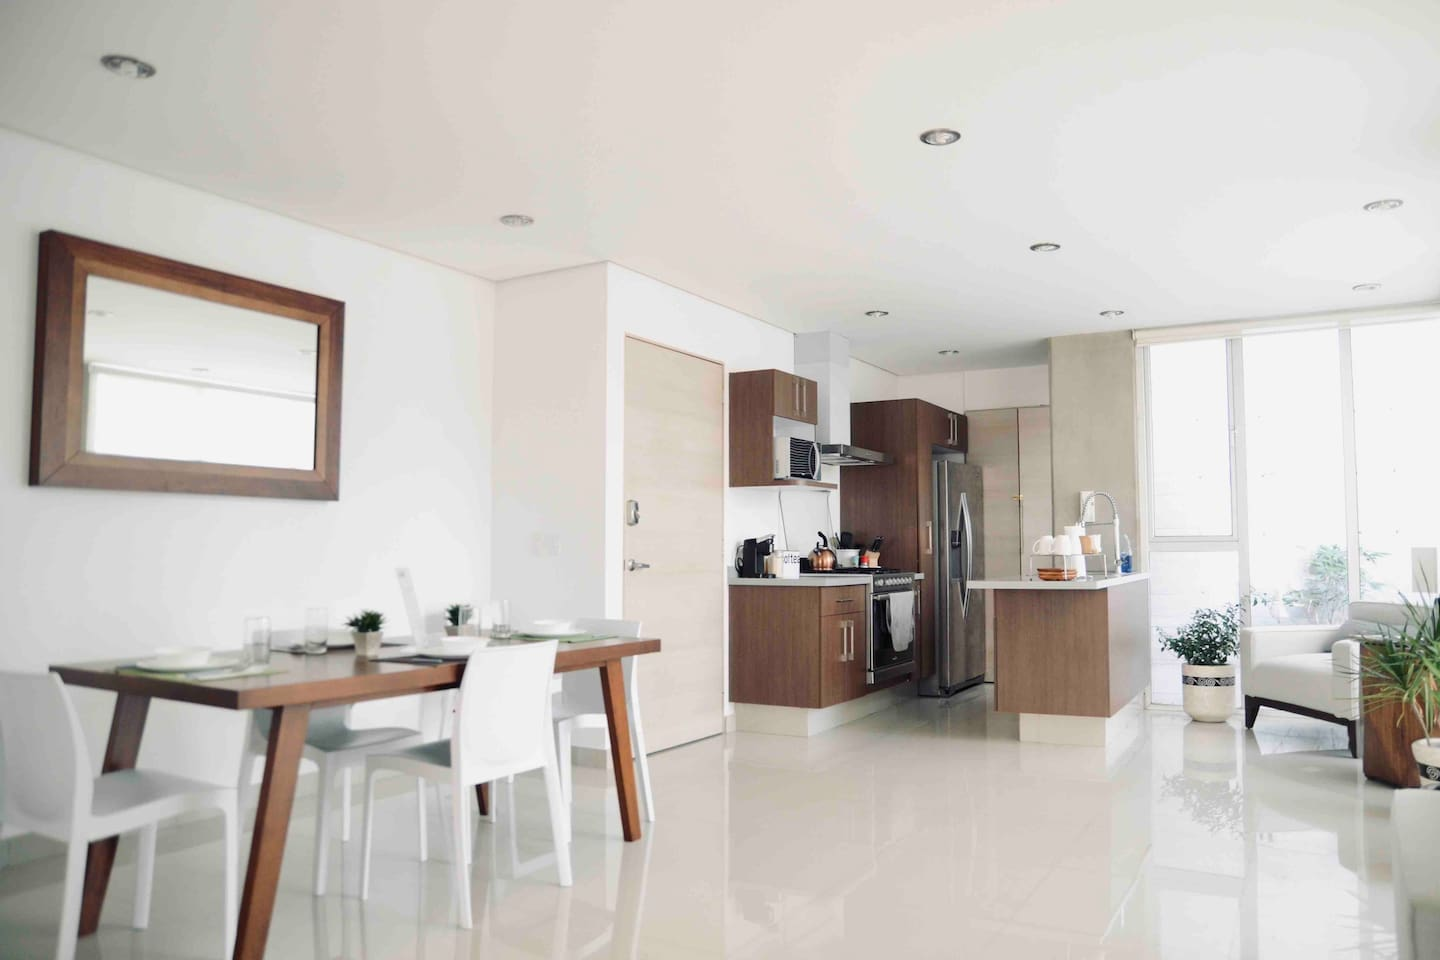 Spacious living and dining room with modern amenities. Plenty of natural sunlight when you want it.